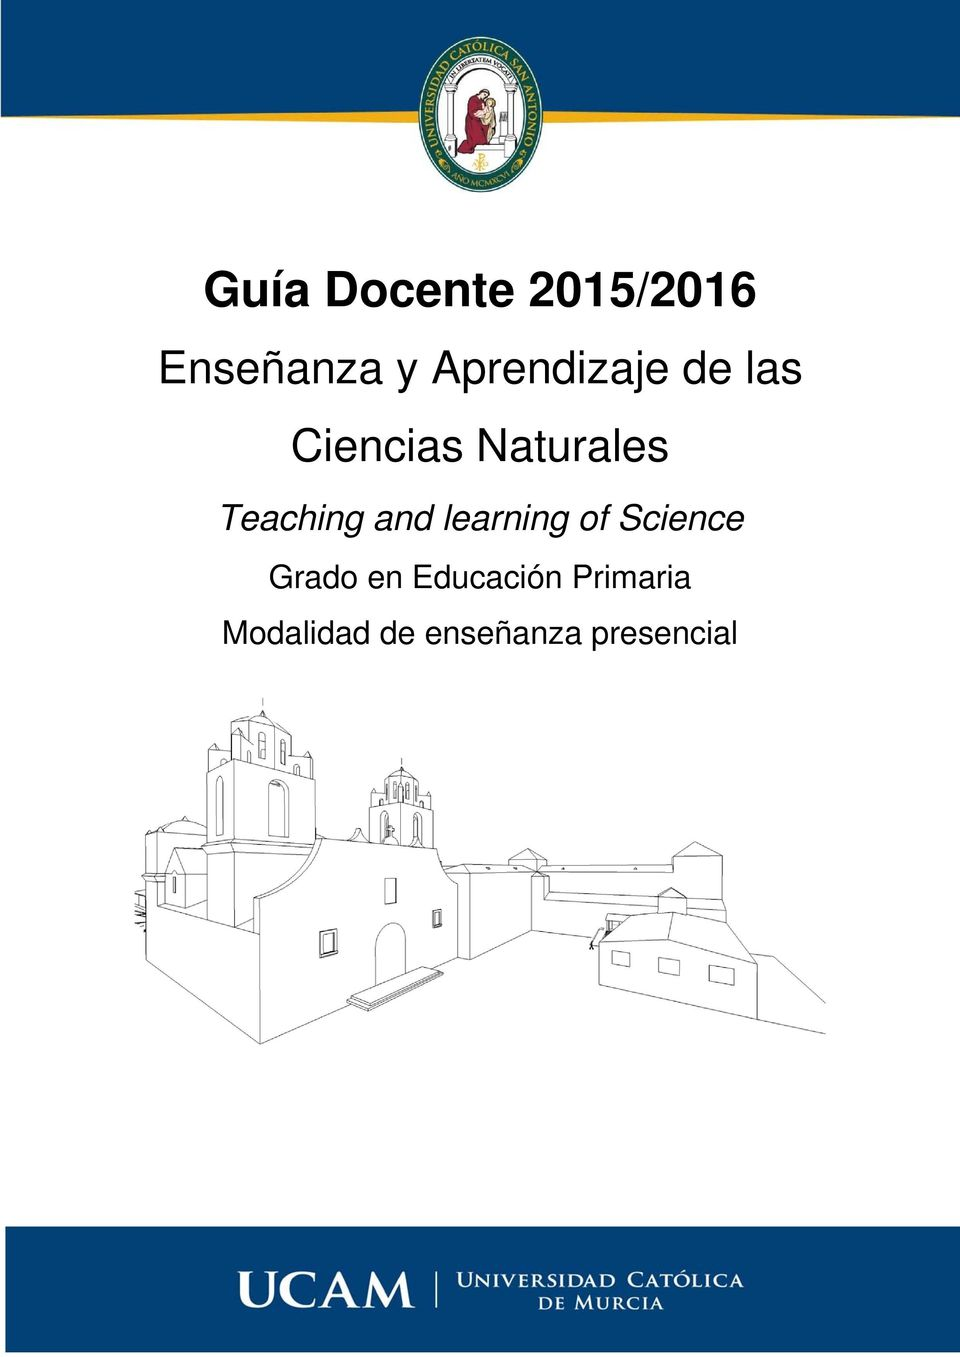 learning of Science Grado en